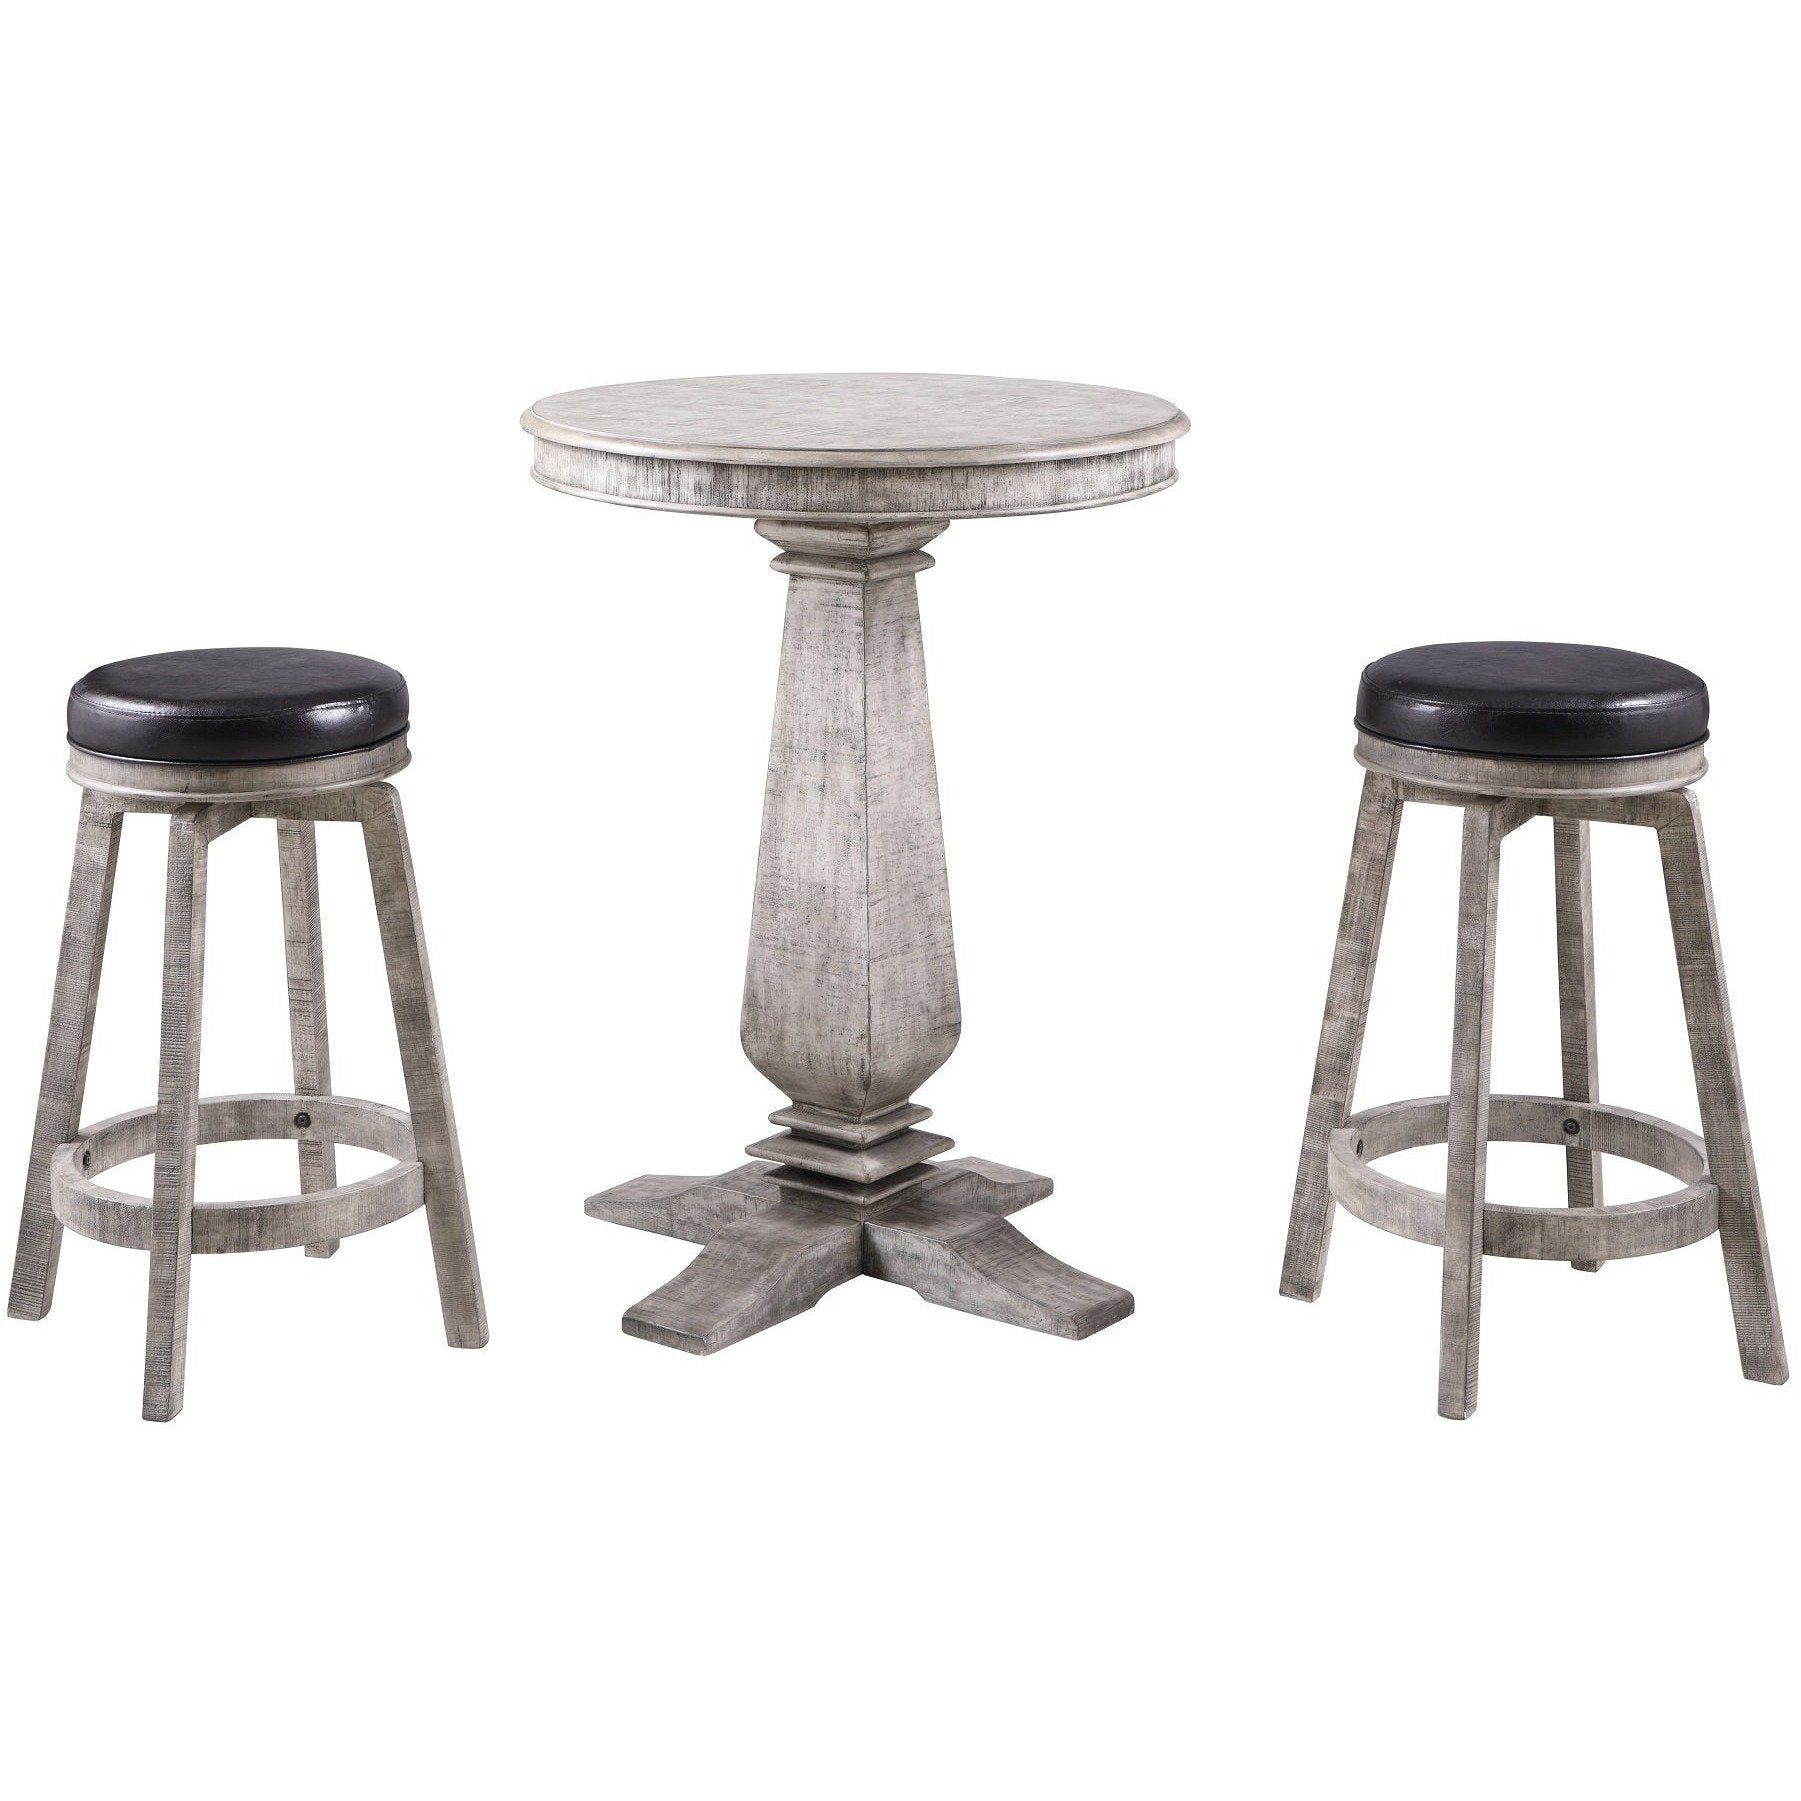 Hathaway Montecito 3 Piece Pub Table Set - Gaming Blaze